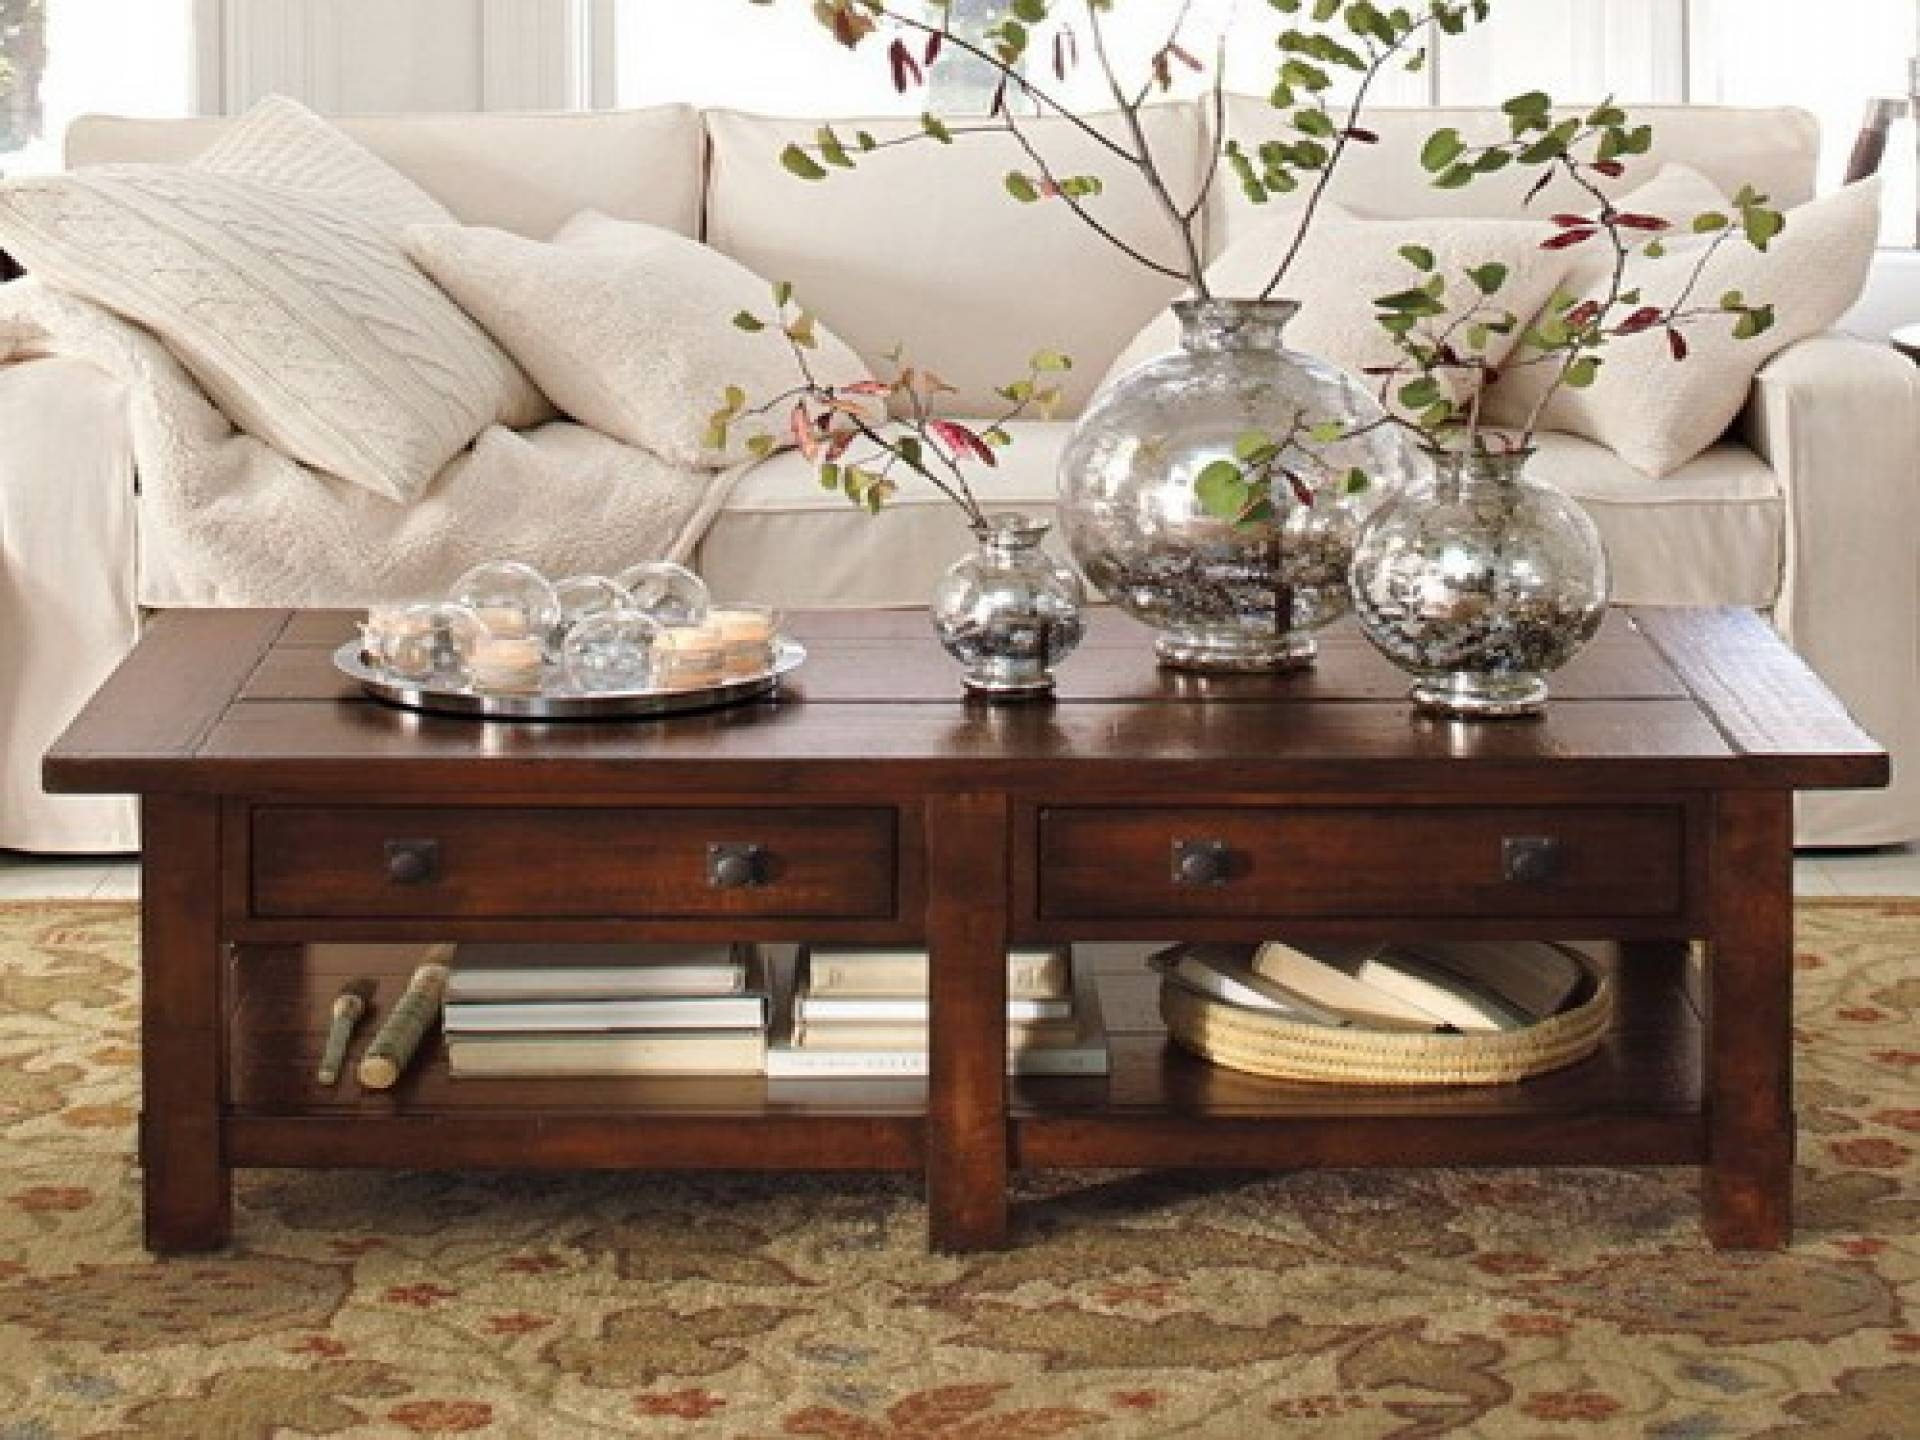 Rustic Coffee Table Decor Ideas | Coffee Table Intended For Rustic Coffee Table Drawers (View 25 of 30)